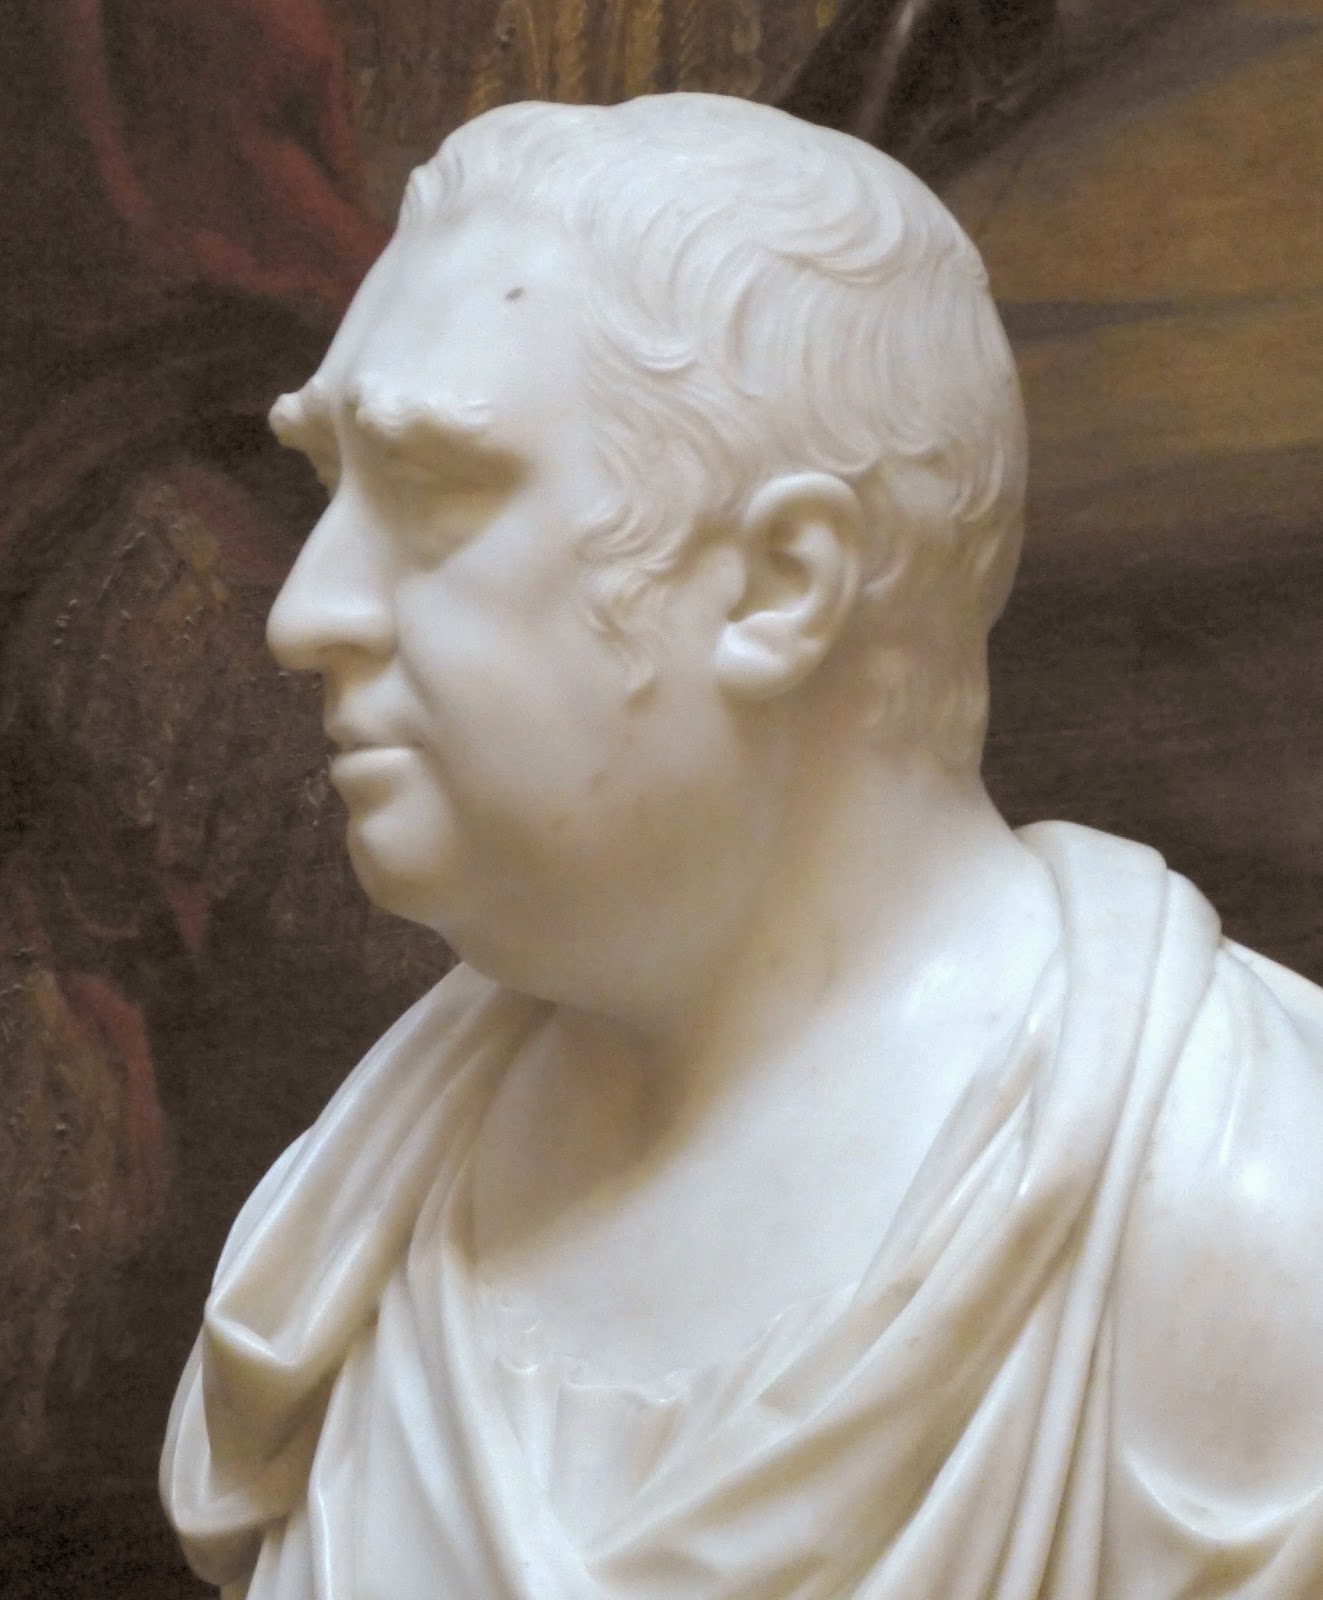 Bust of Charles James Fox  by Joseph Nollekens on display at Chatsworth